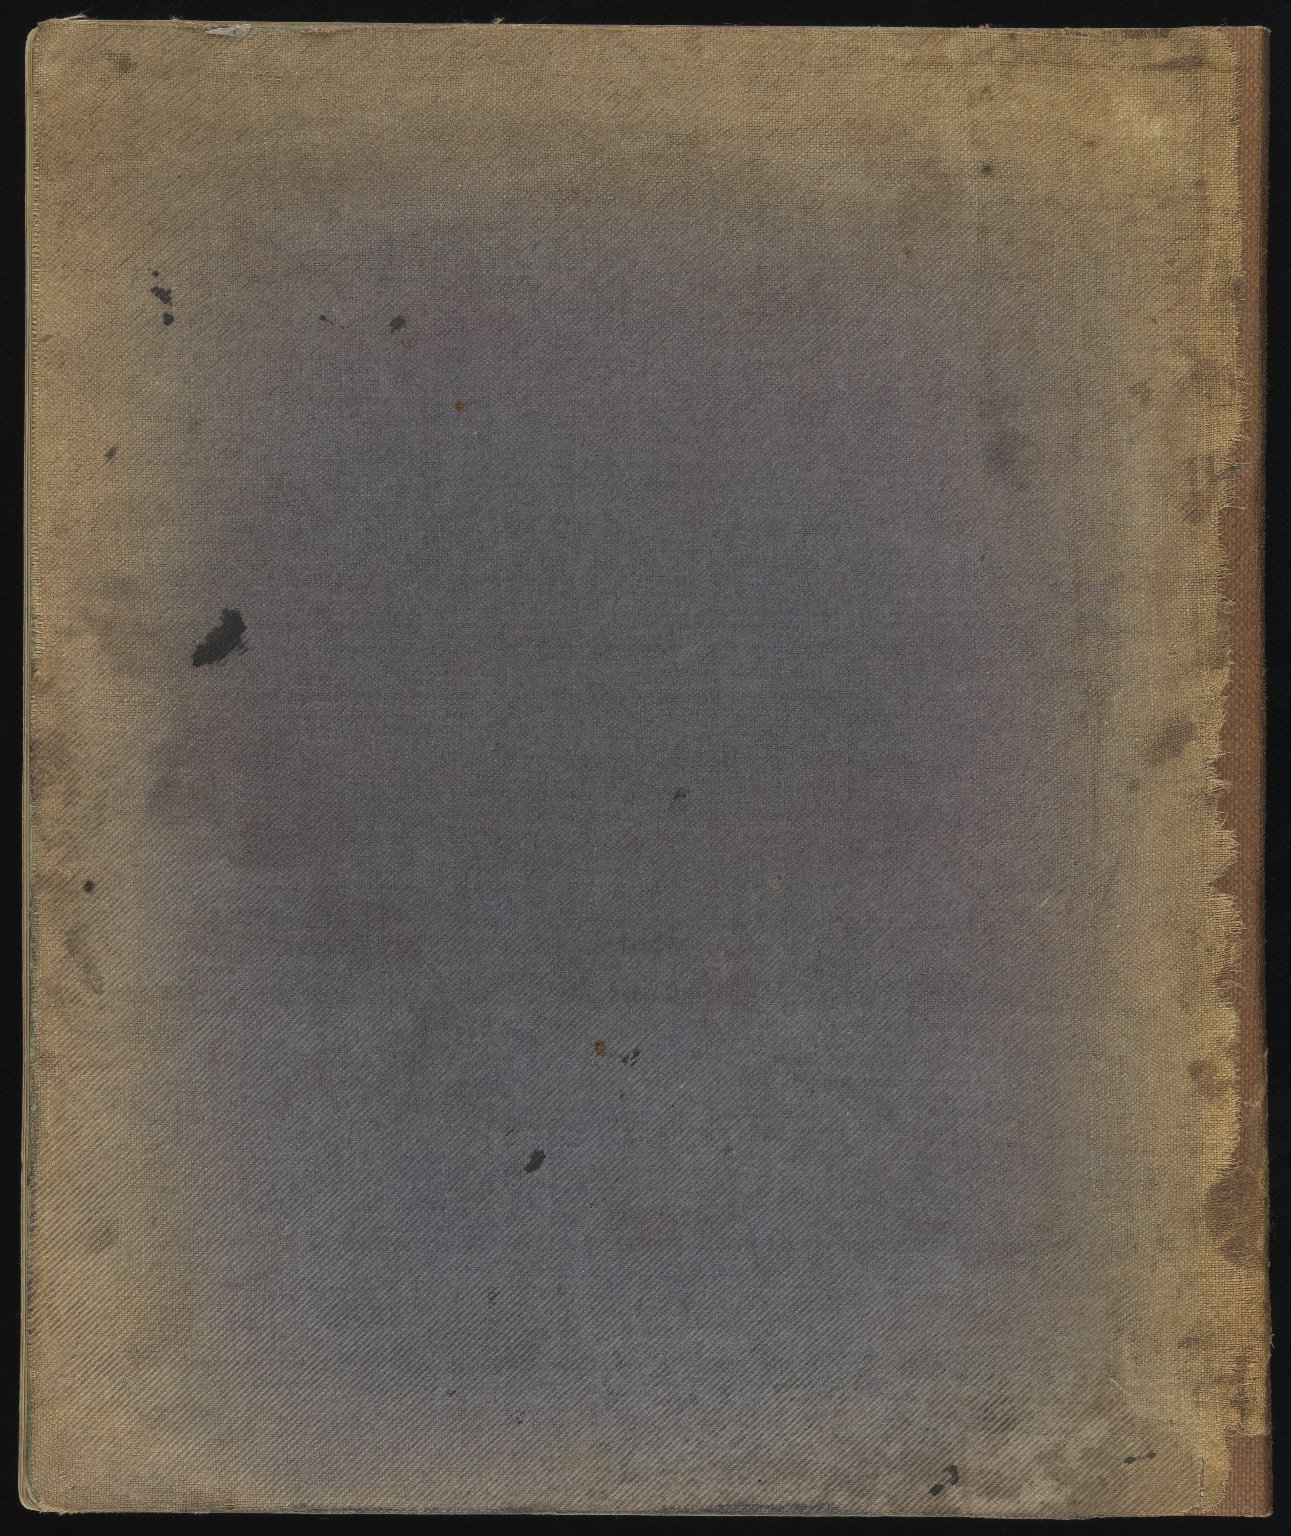 Field Notebook, Back cover